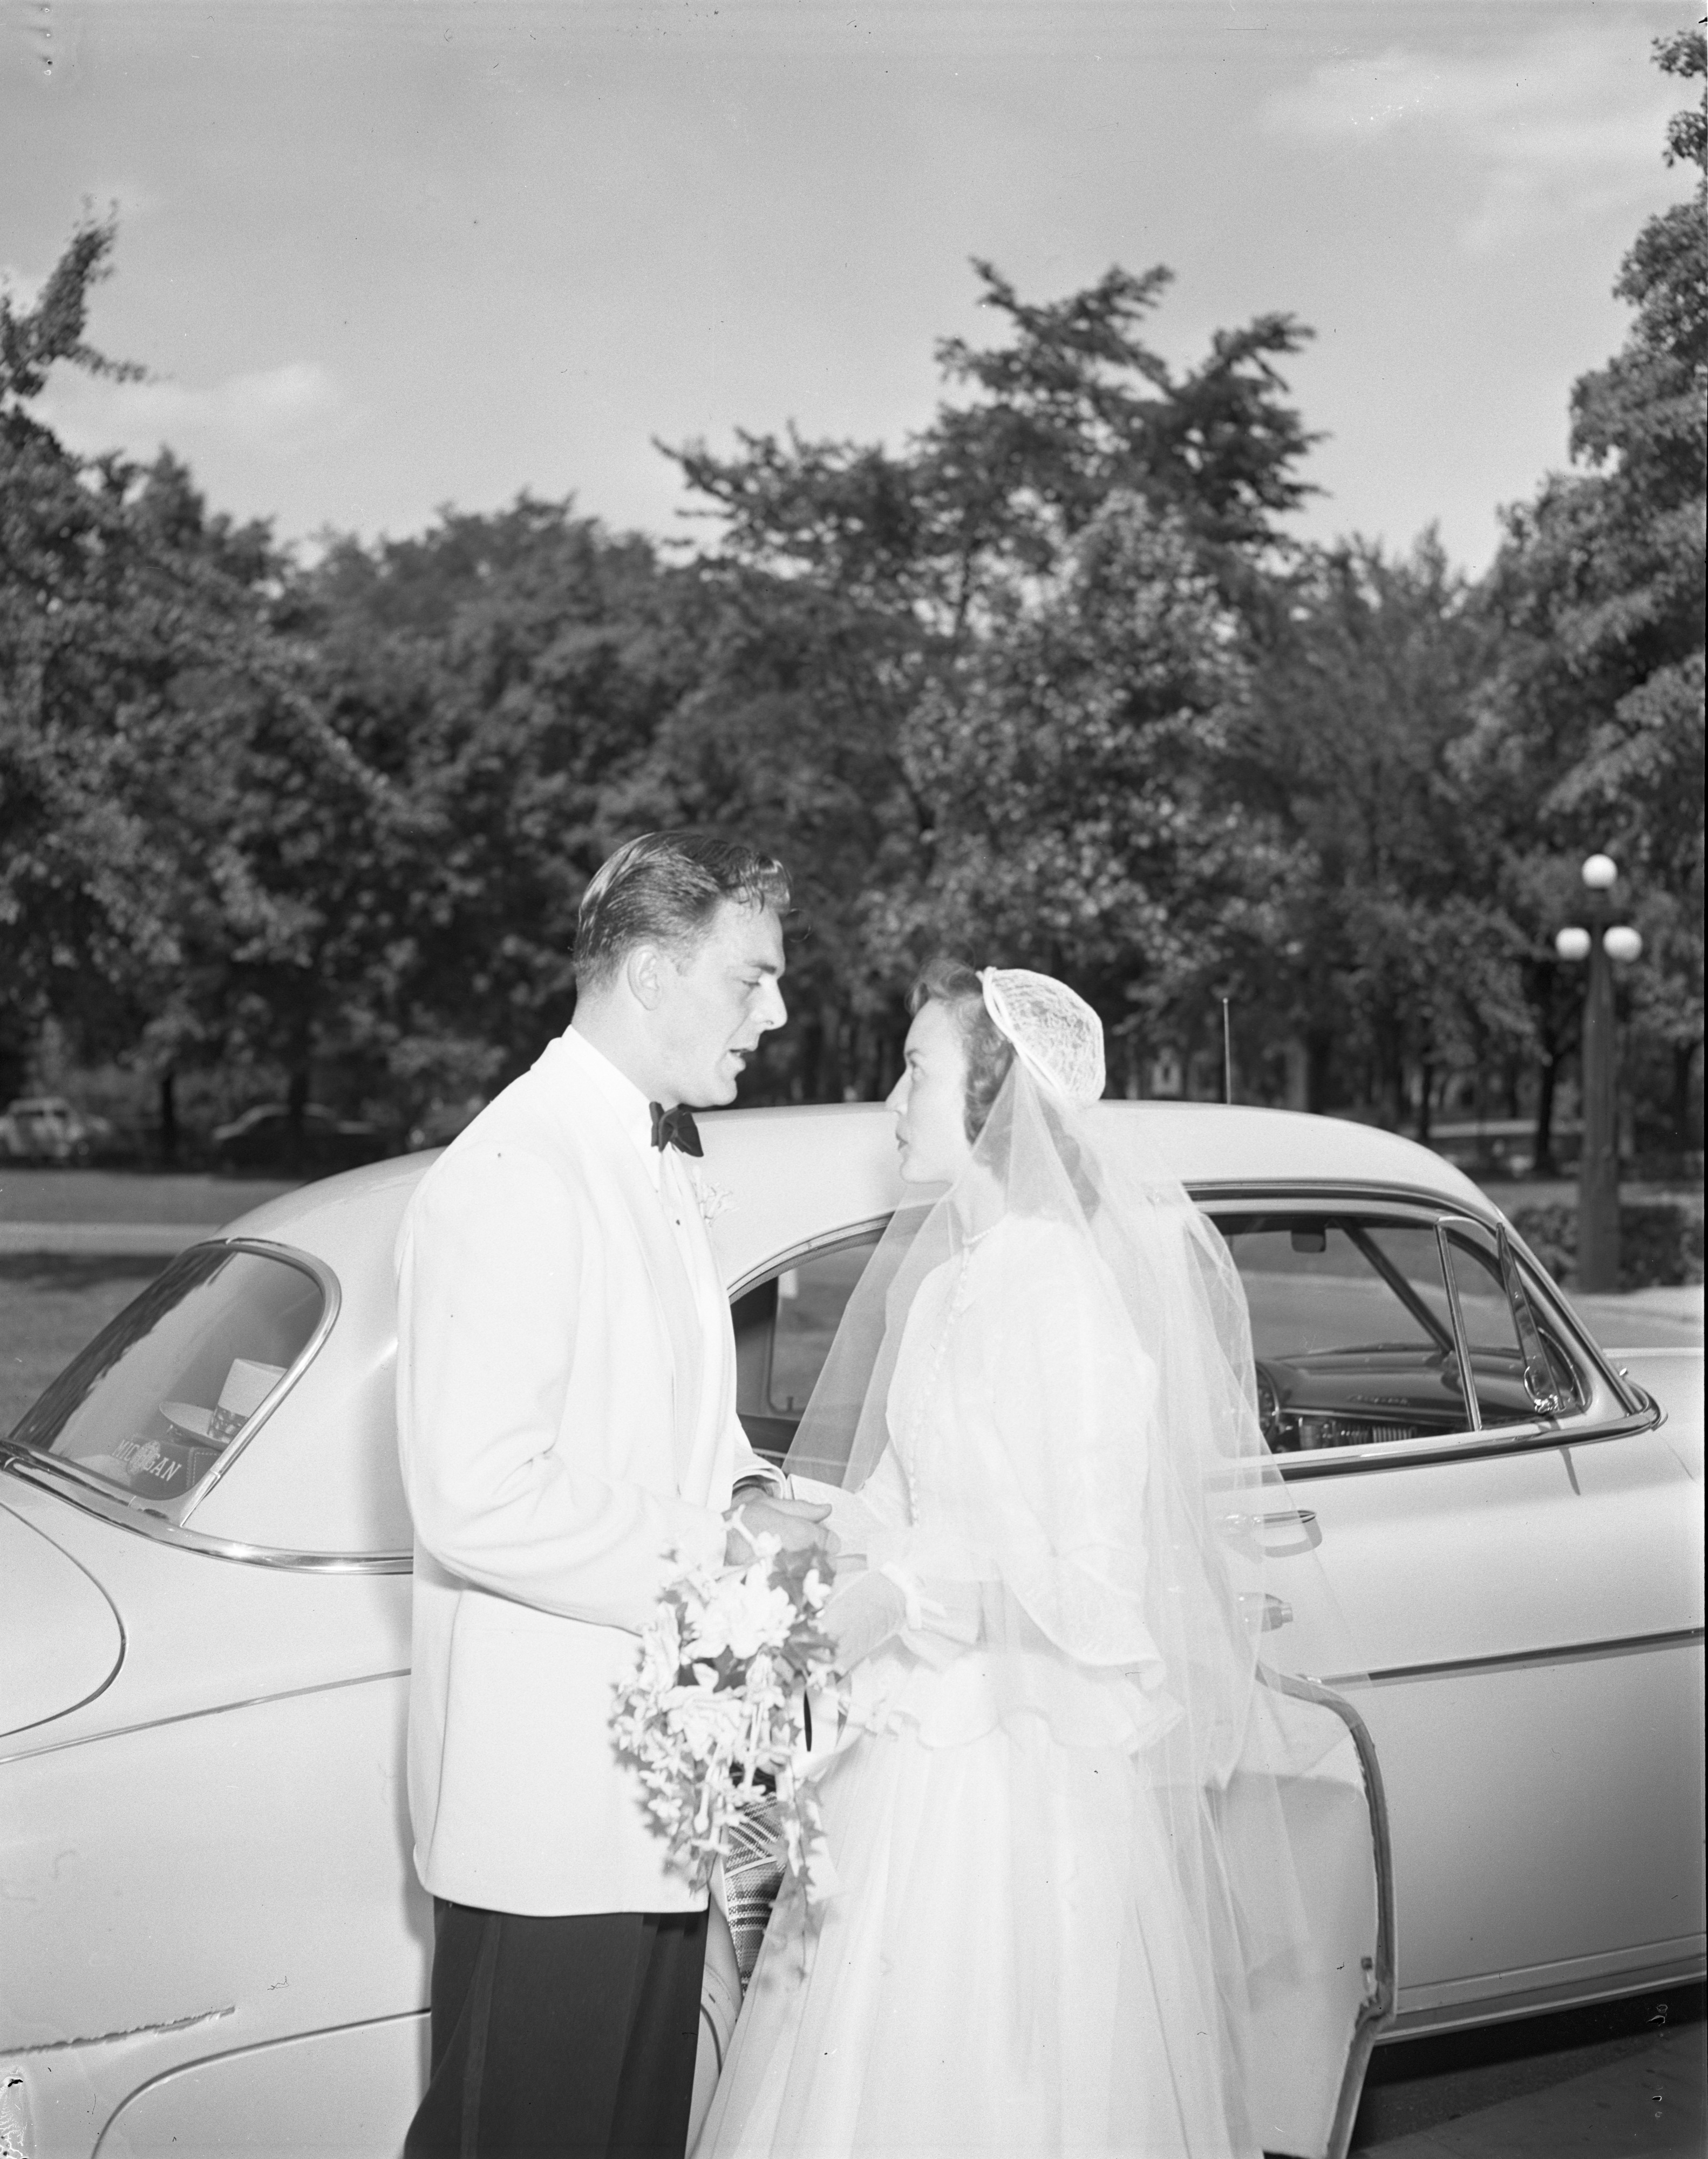 Dick Rifenburg & Ruth Martini On Their Wedding Day - July 1, 1950 image